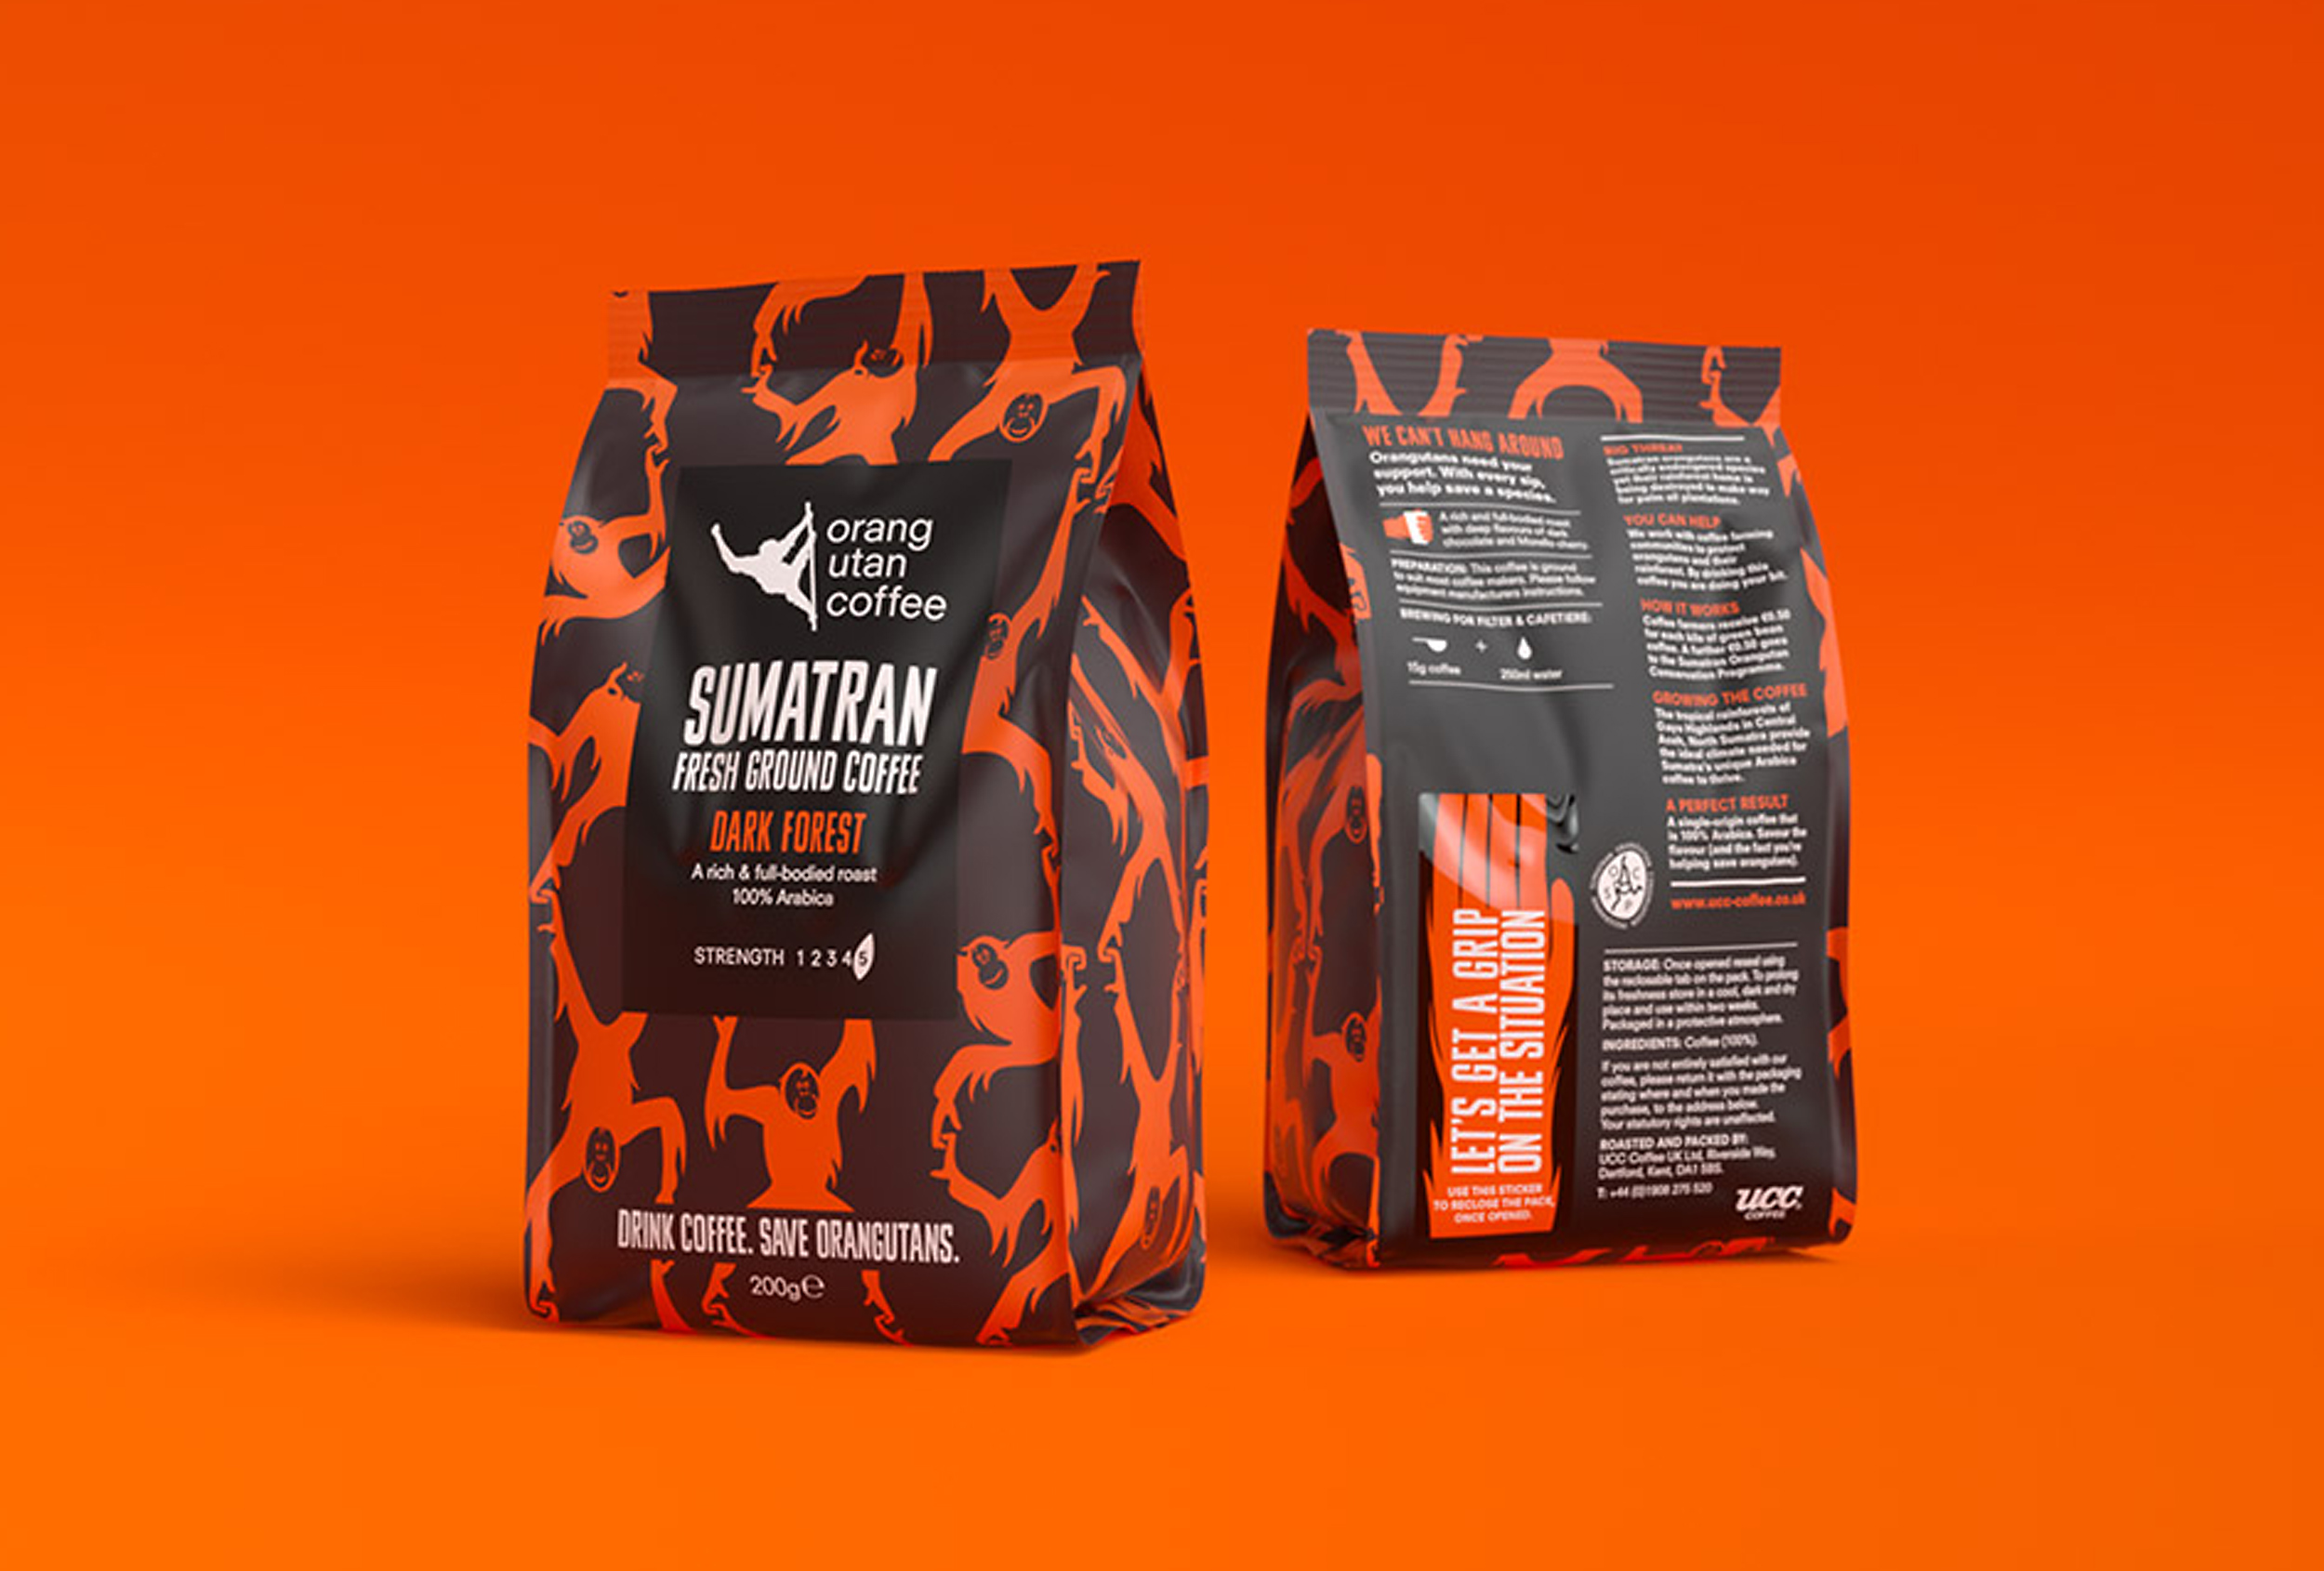 Branded packaging for Orang Utan coffee, designed by Distil Studio.